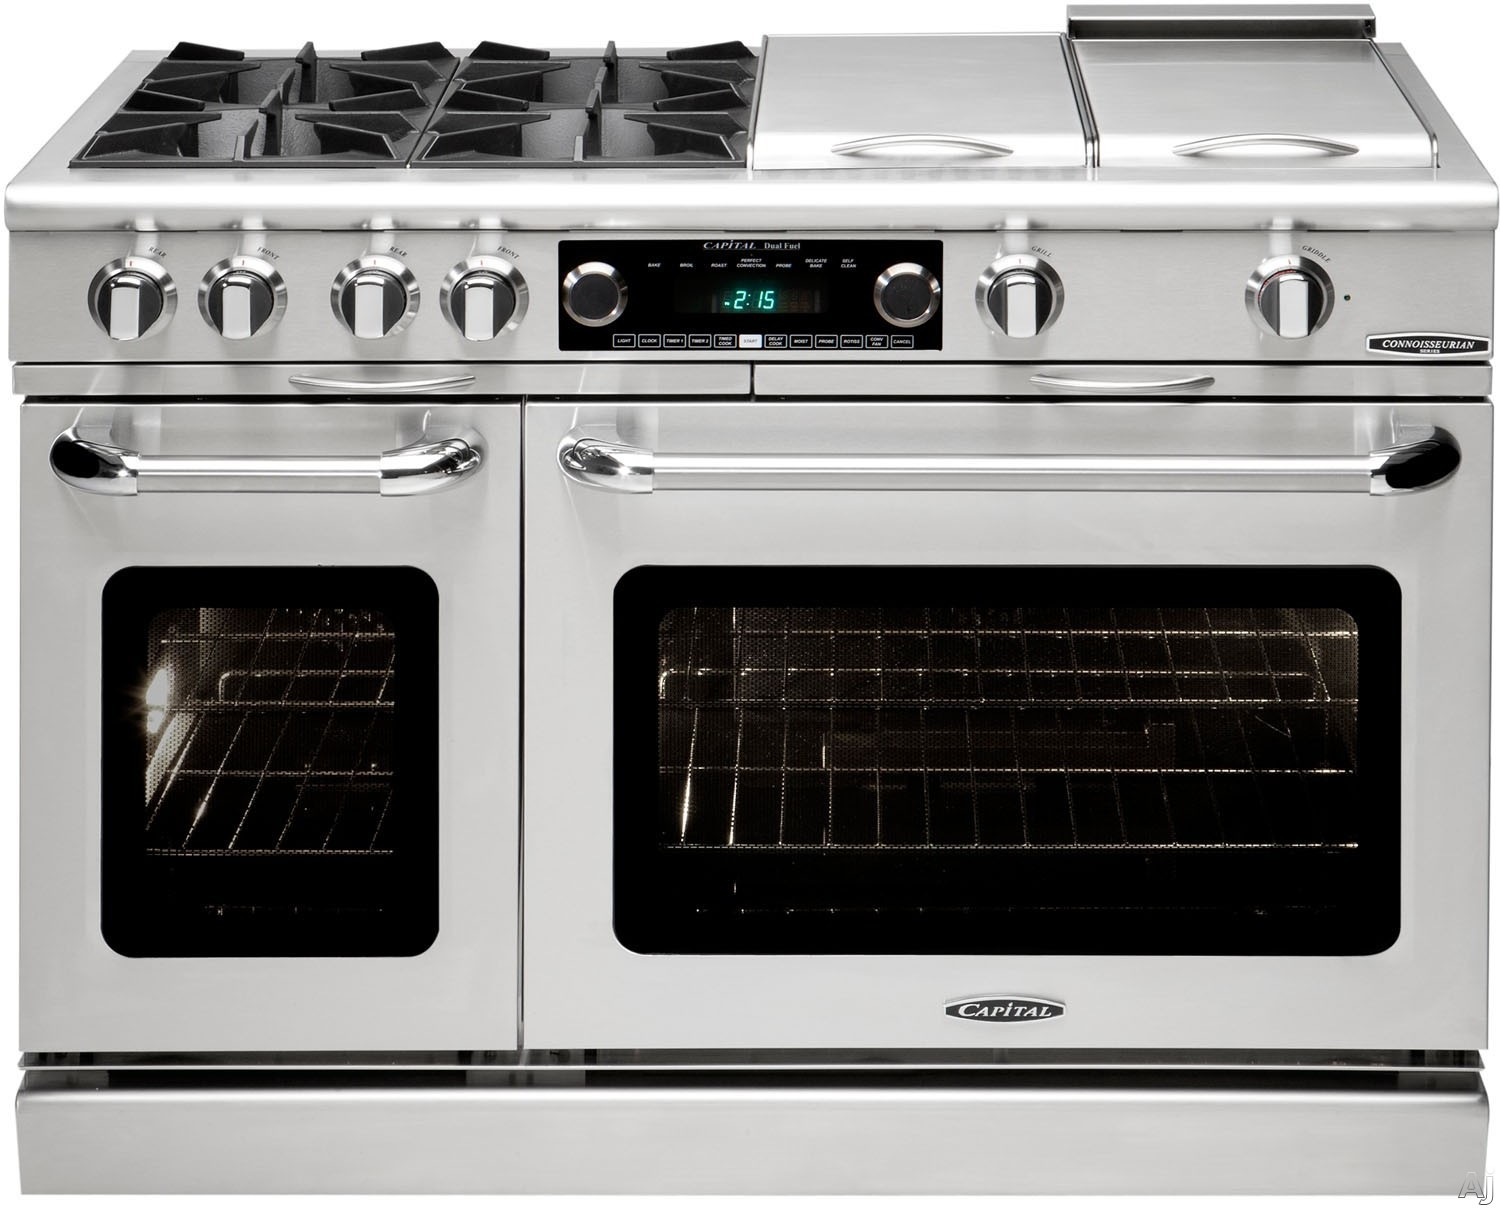 "Capital Connoisseurian Series COB484BB 48 Inch Pro-Style Dual Fuel Range with 4 Open Burners, 24"""" BBQ Grill, Meat Probe, Moto-Rotisâ""¢ Rotisserie, Moist Bake Option, Dual Kitchen Timers, 5.4 cu. ft. Primary Oven and 2.4 cu. ft. Secondary Oven"" COB484BB"